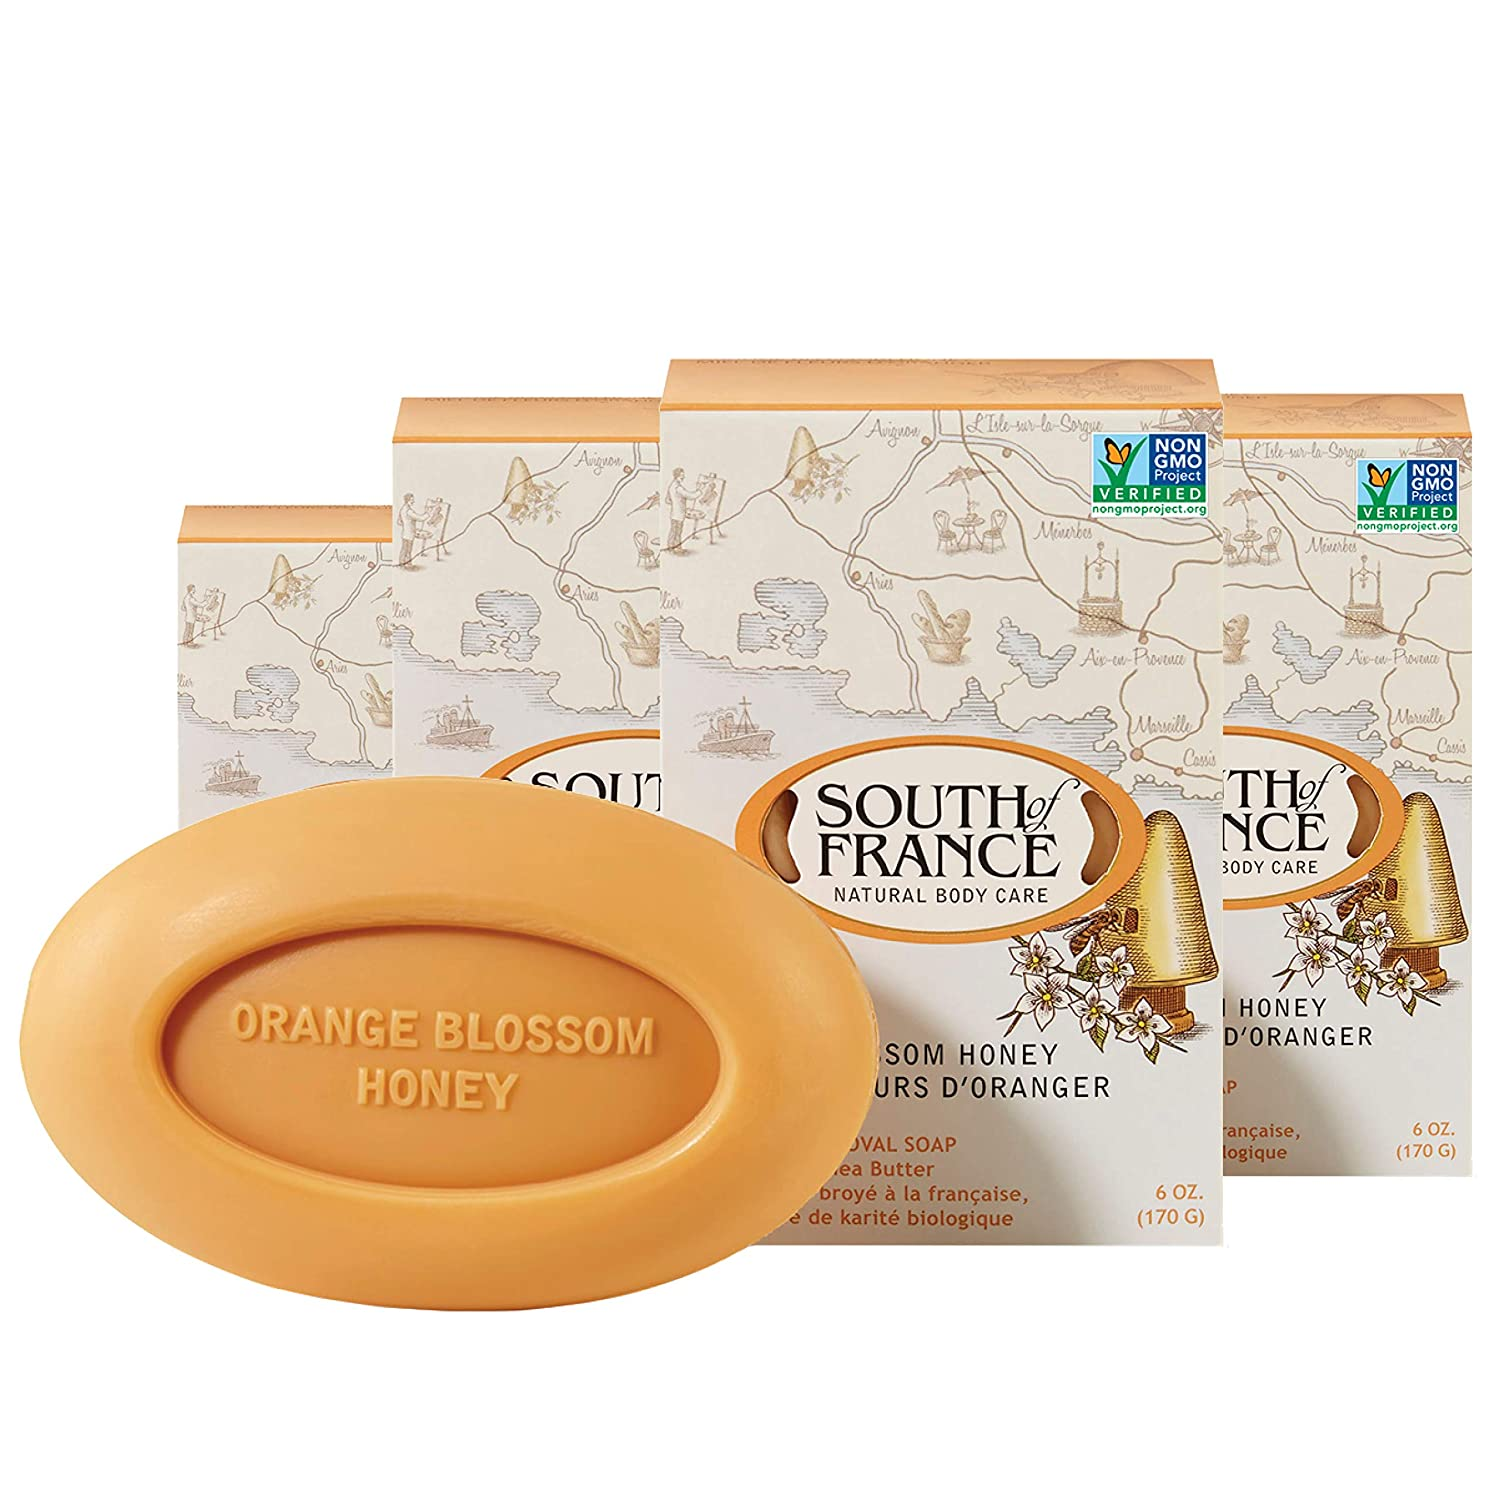 Orange Blossom Honey Natural Bar Soap by South of France Natural Body Care | Triple-Milled French Soap with Organic Shea Butter + Essential Oils | Non-GMO Body Soap | 6 oz Bar – 4 Pack